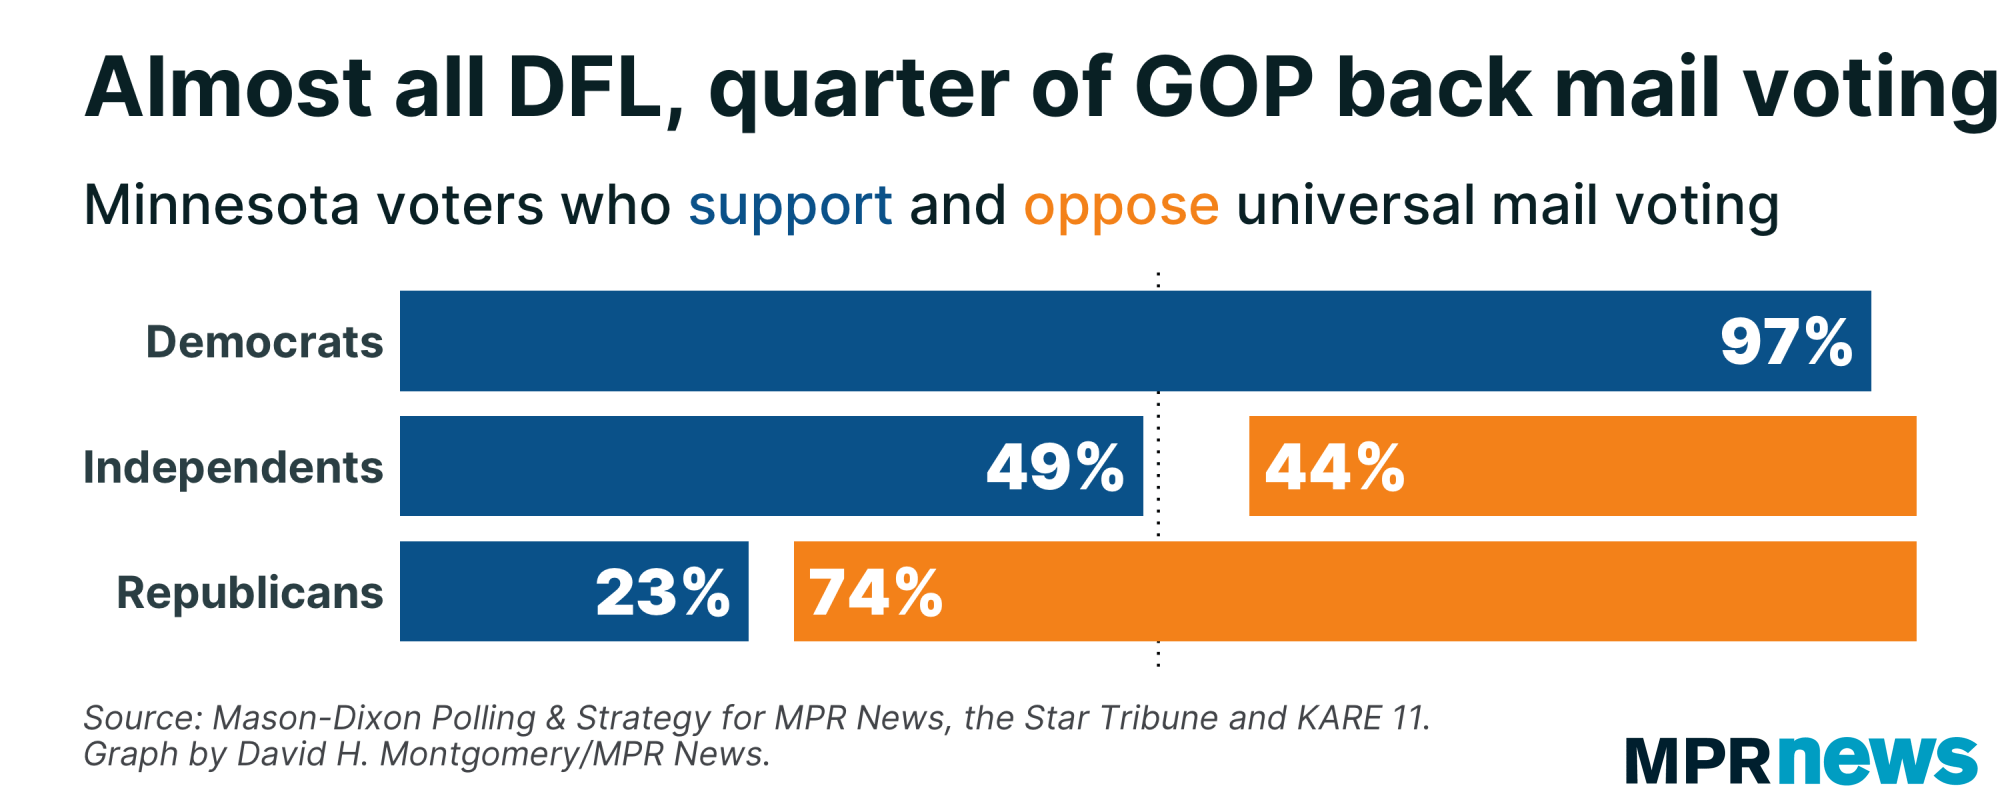 97% of DFL, 49% of independents and 23% of GOP back universal mail voting